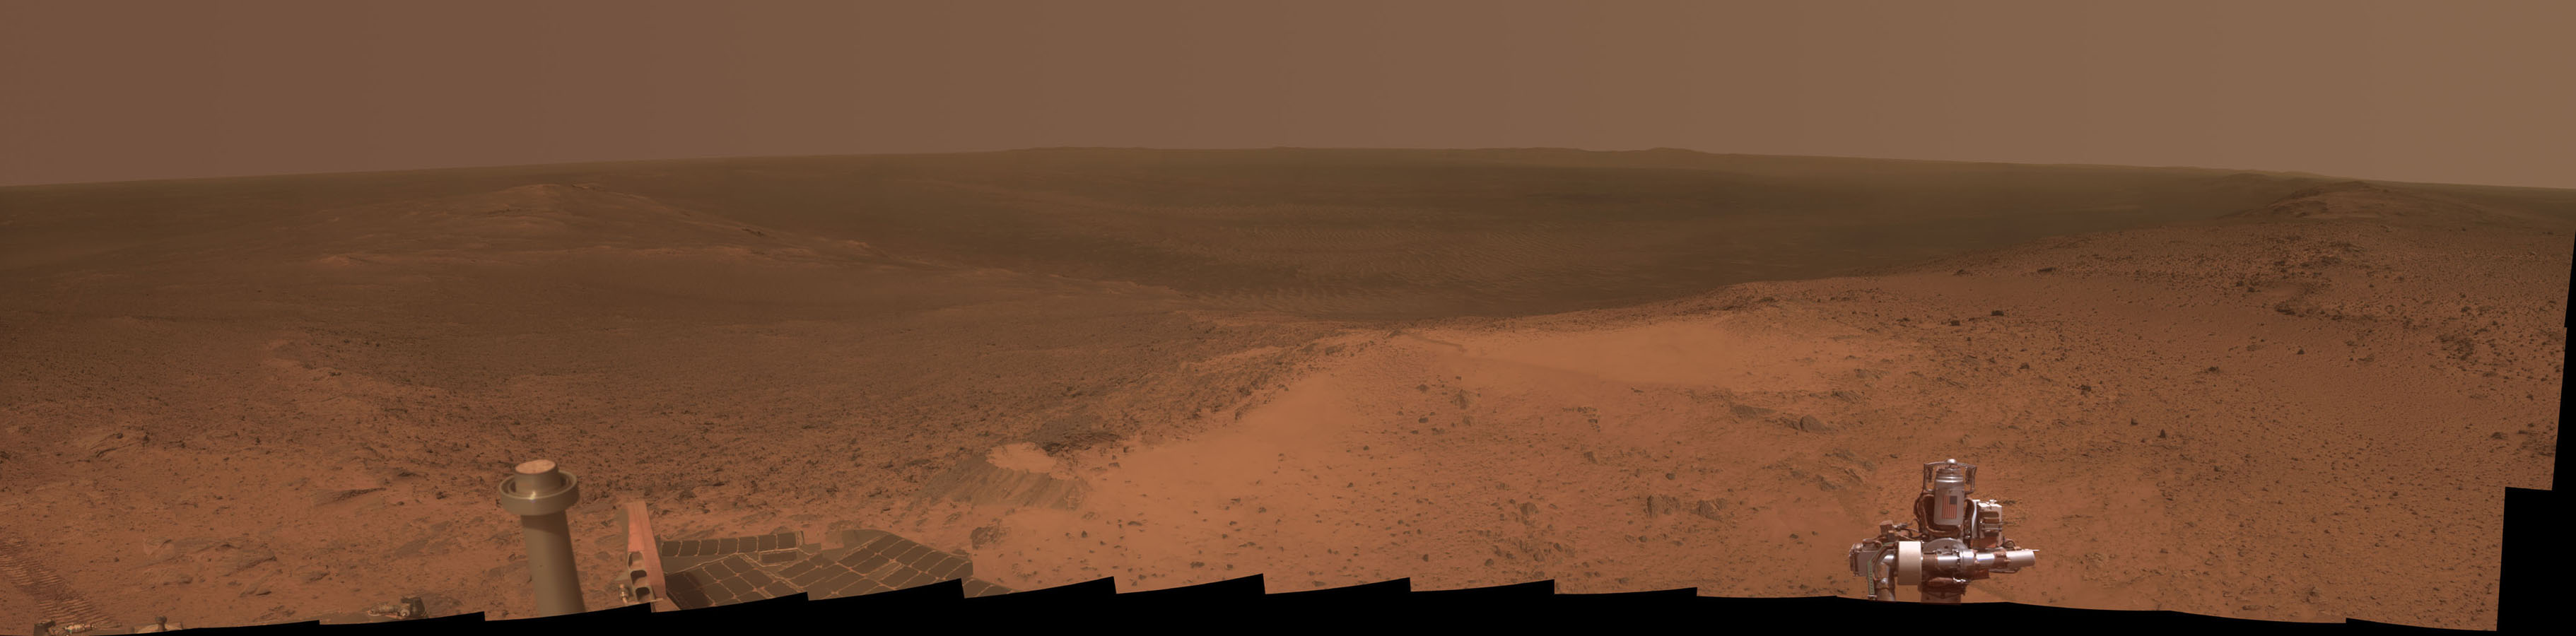 This panorama is the view NASA's Mars Exploration Rover Opportunity gained from the top of the 'Cape Tribulation' segment of the rim of Endeavour Crater.